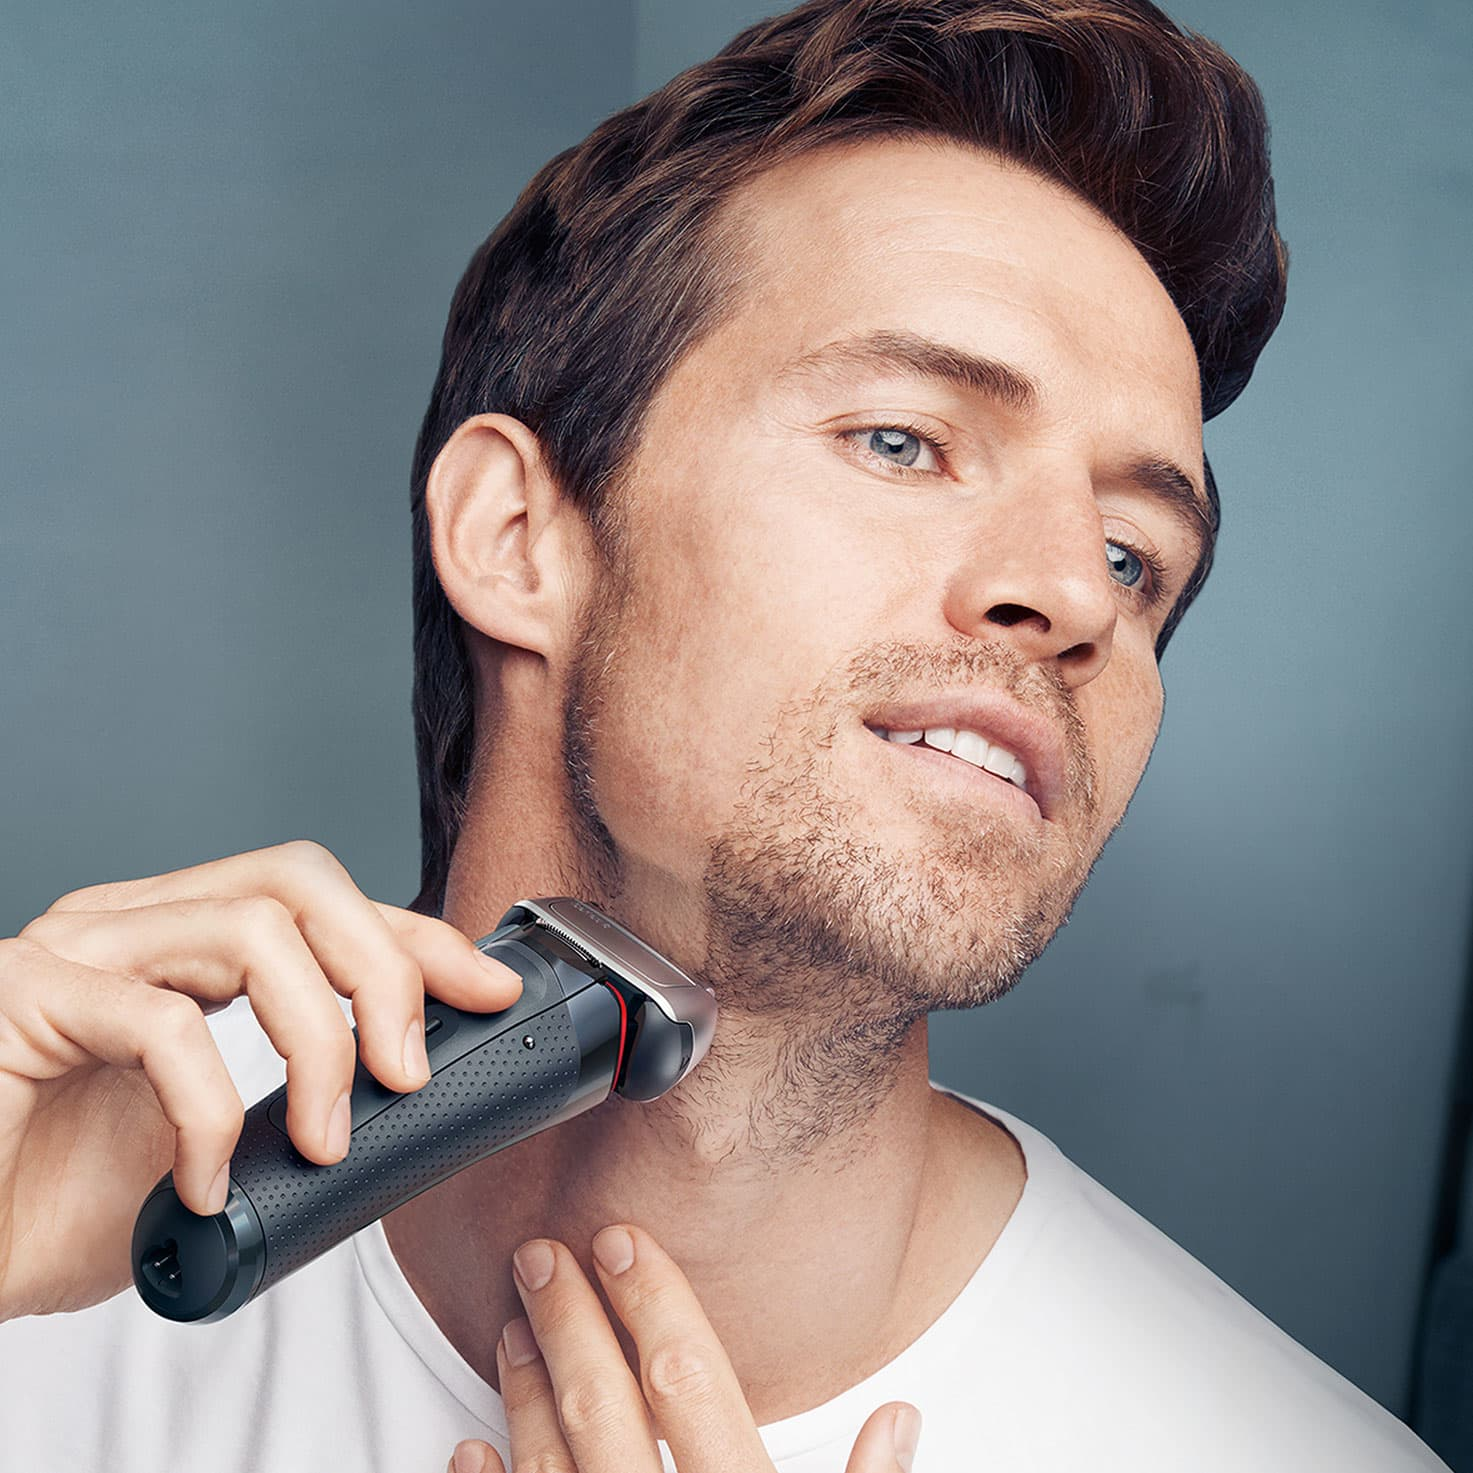 Series 8 8340s shaver - in use